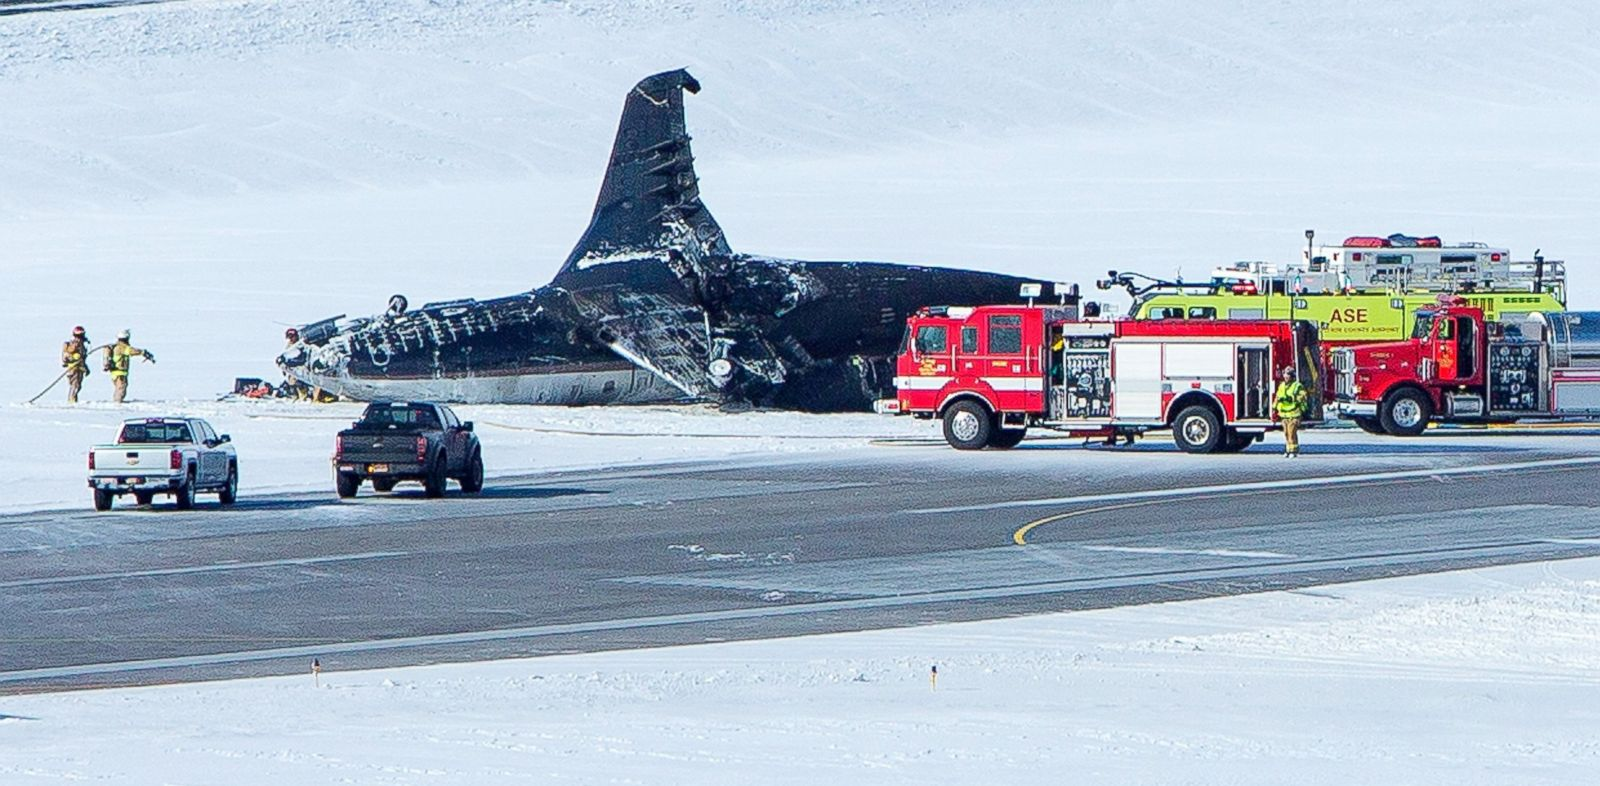 PHOTO: Emergency crews respond to a private plane that crashed while attempting to land at Aspen-Pitkin County Airport, Jan. 5, 2014 in Aspen, Colo.